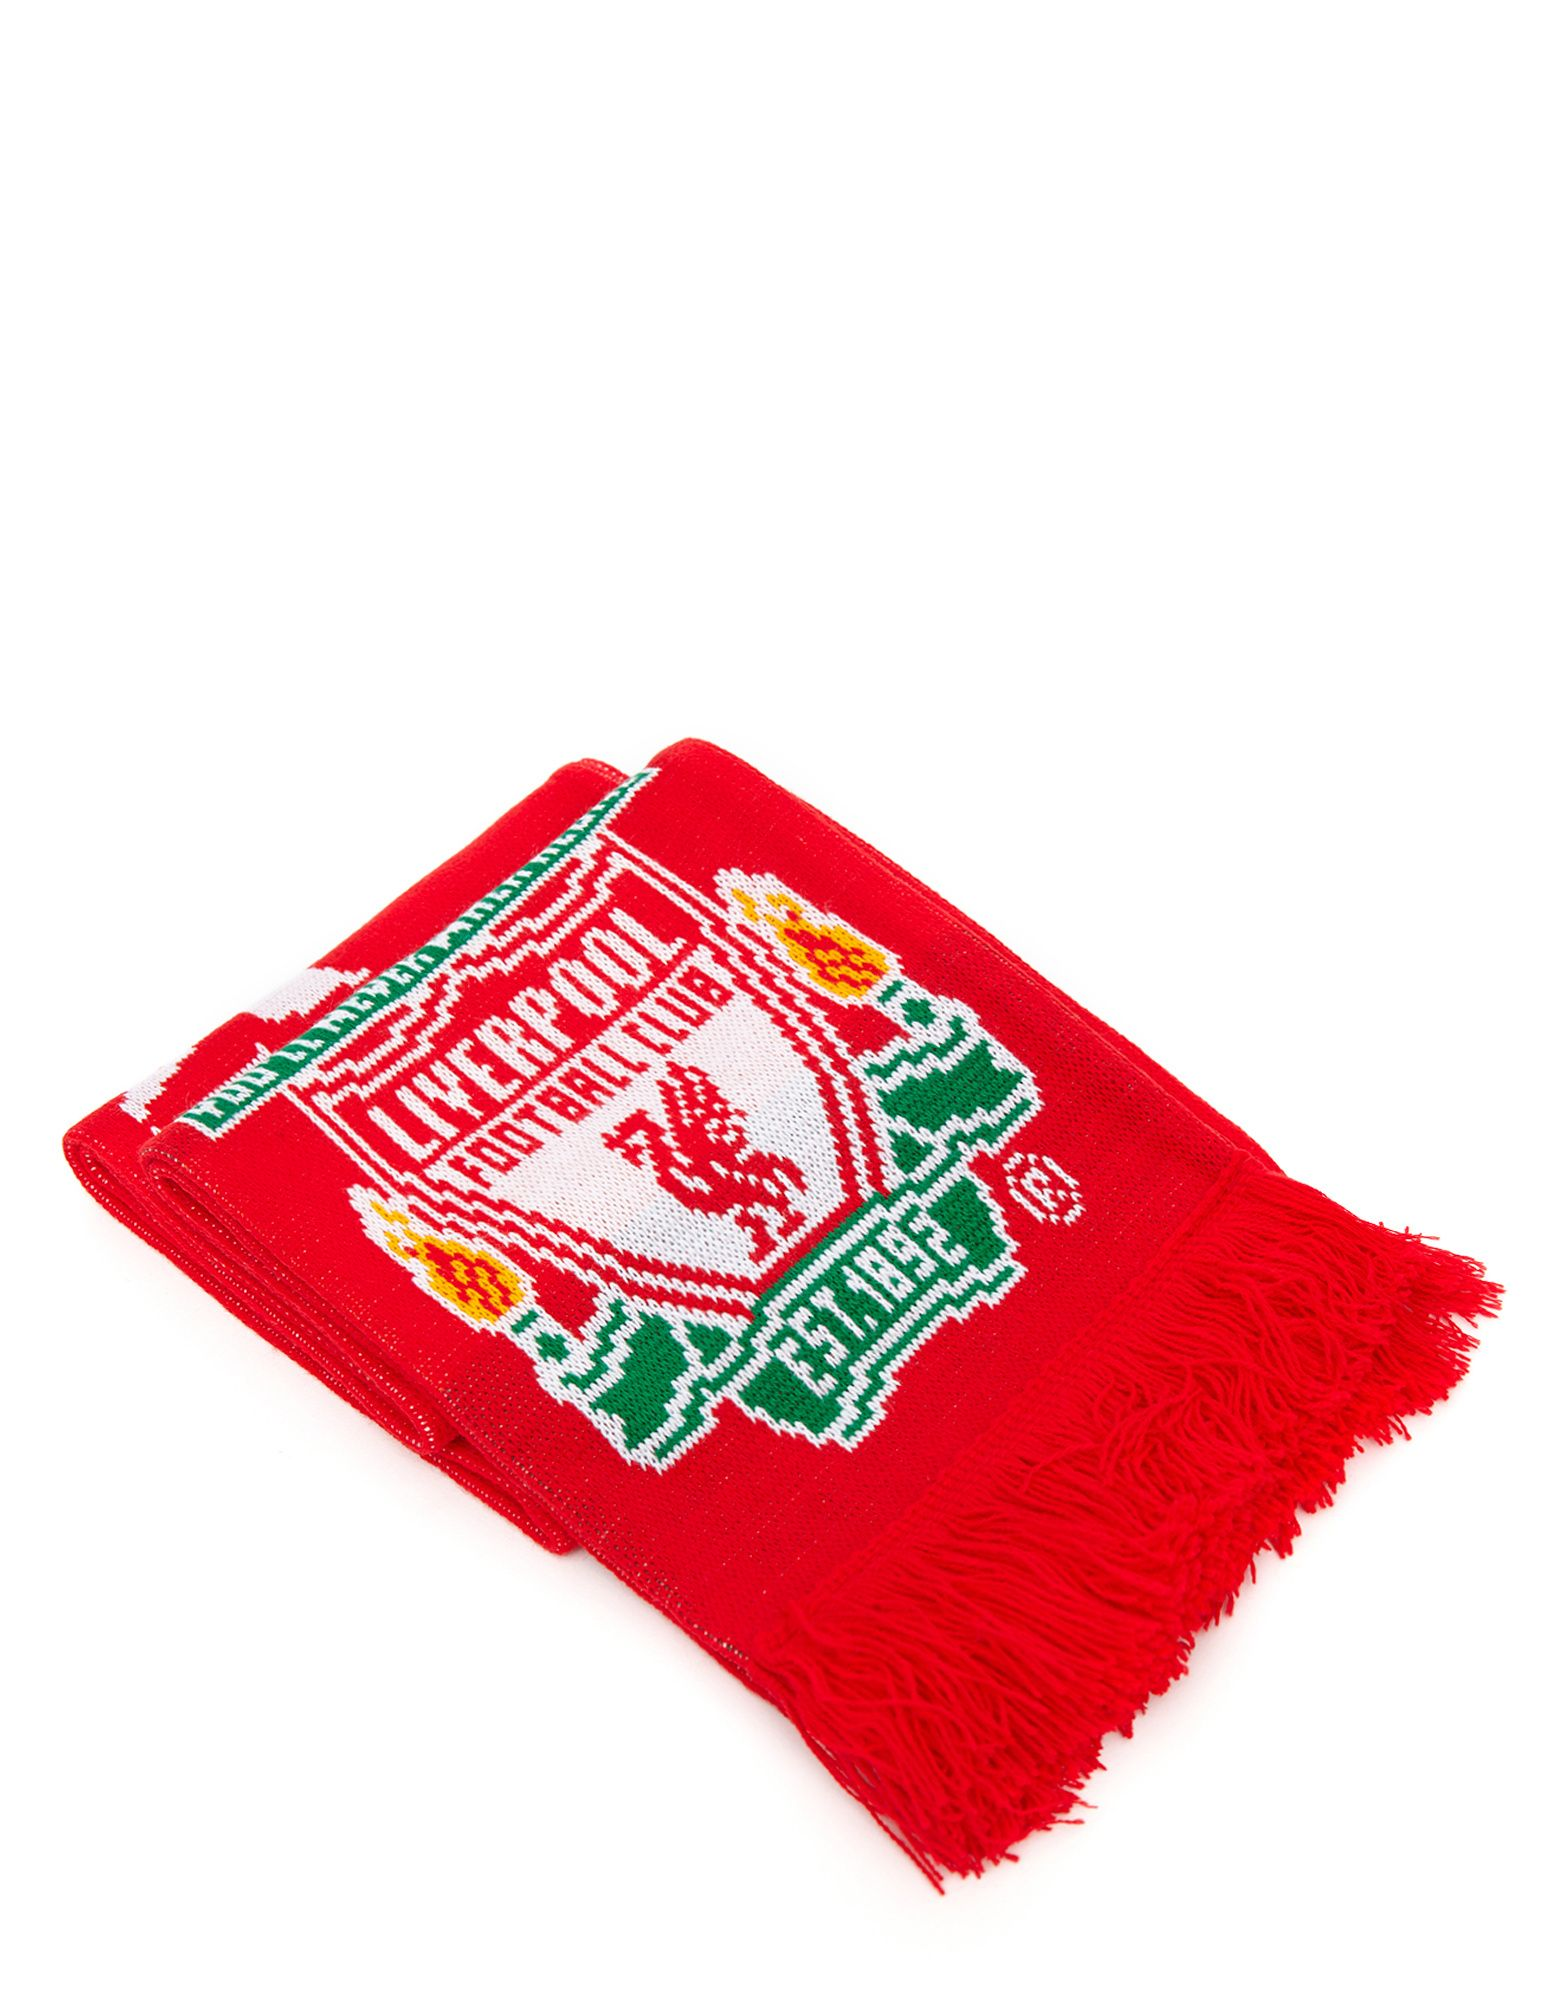 Official Team Liverpool FC Team Scarf